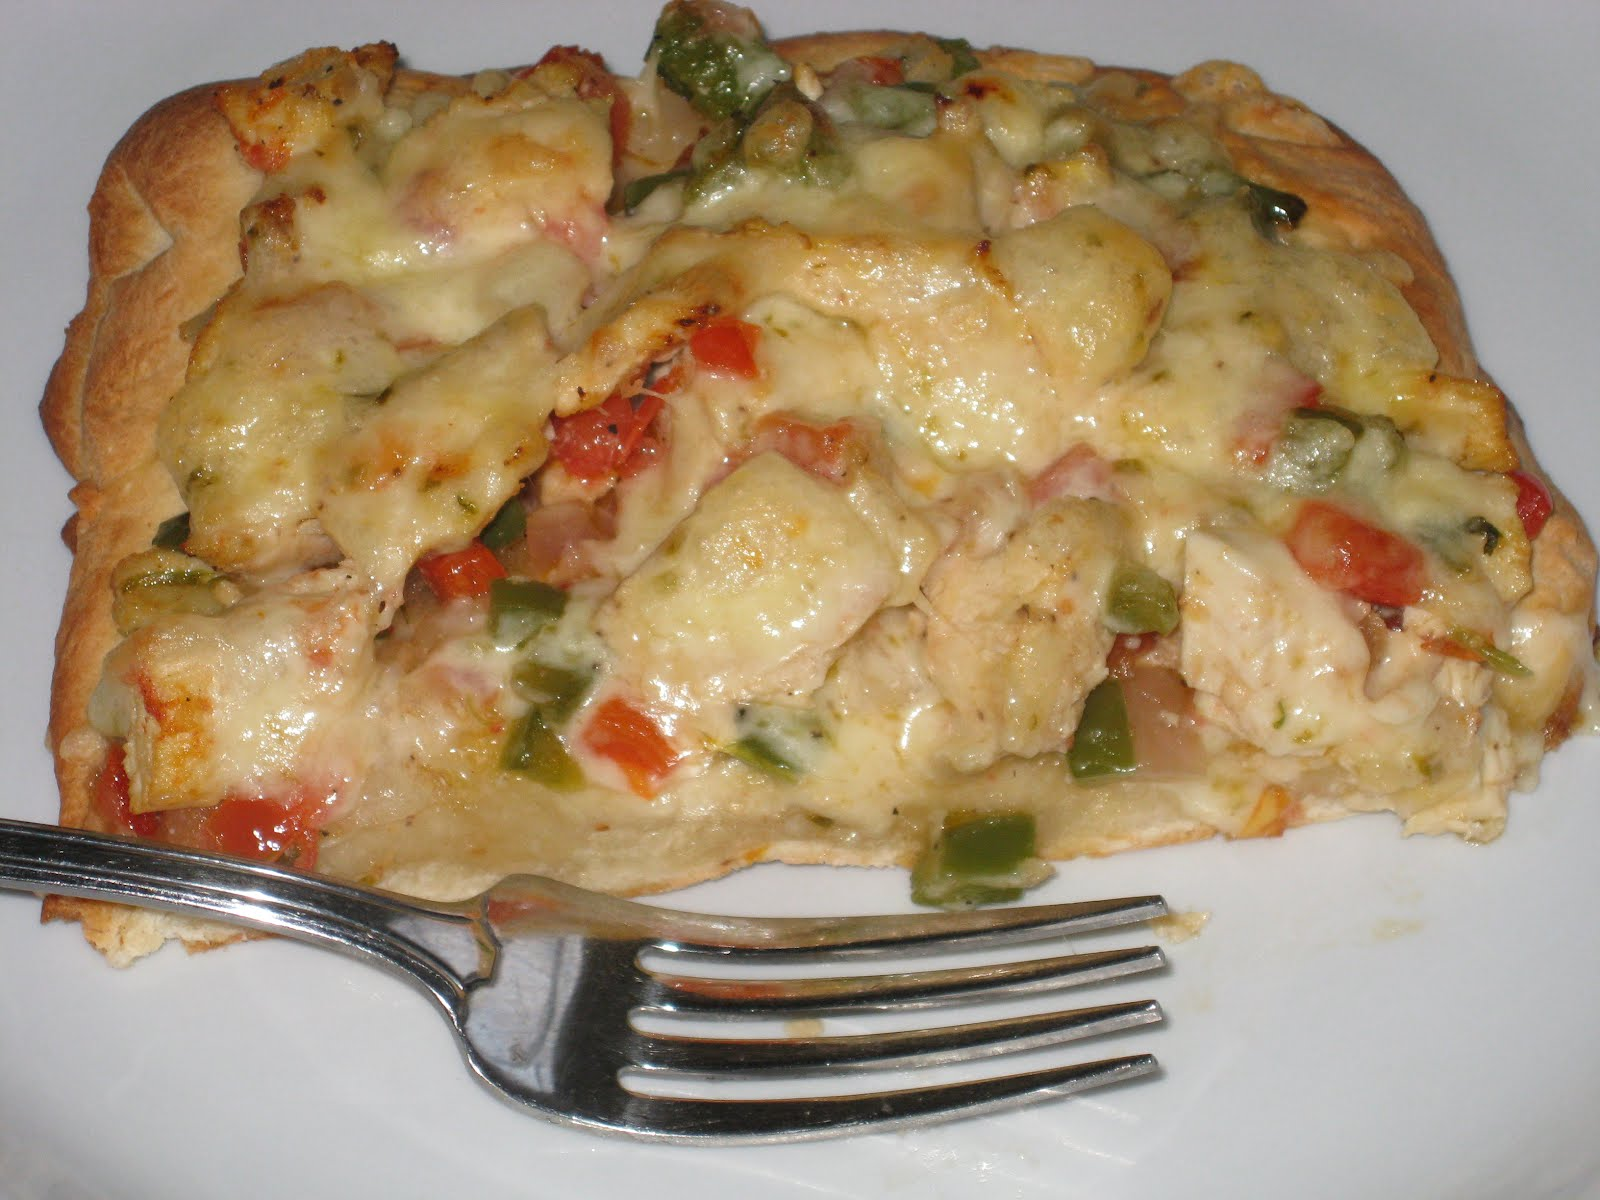 Bonz Blogz: Spicy Chicken and Pepper Jack Pizza